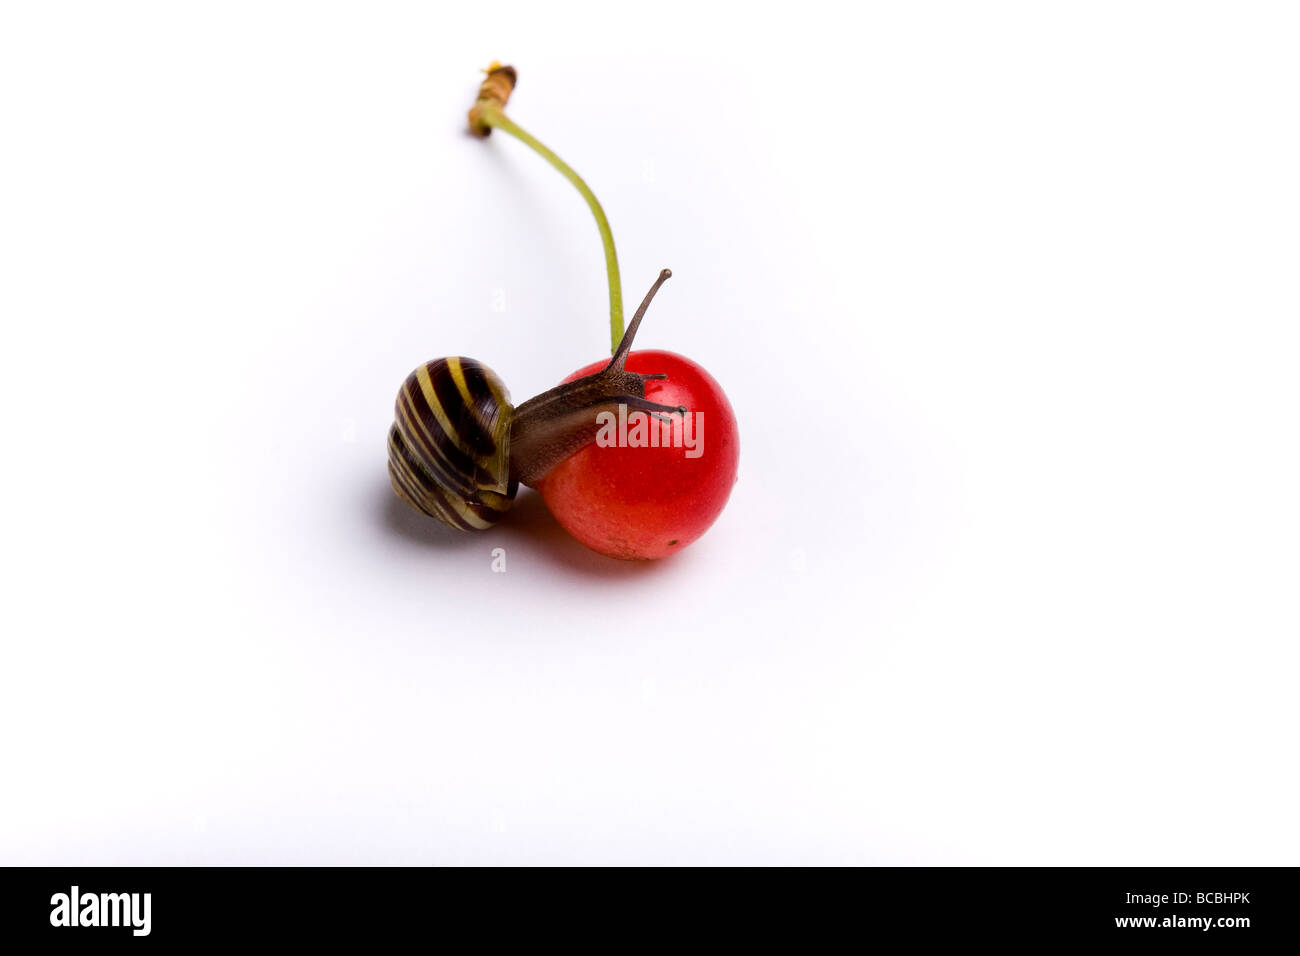 Small red cherry just fallen from tree studio shot against white background with randy garden snail balancing on Stock Photo